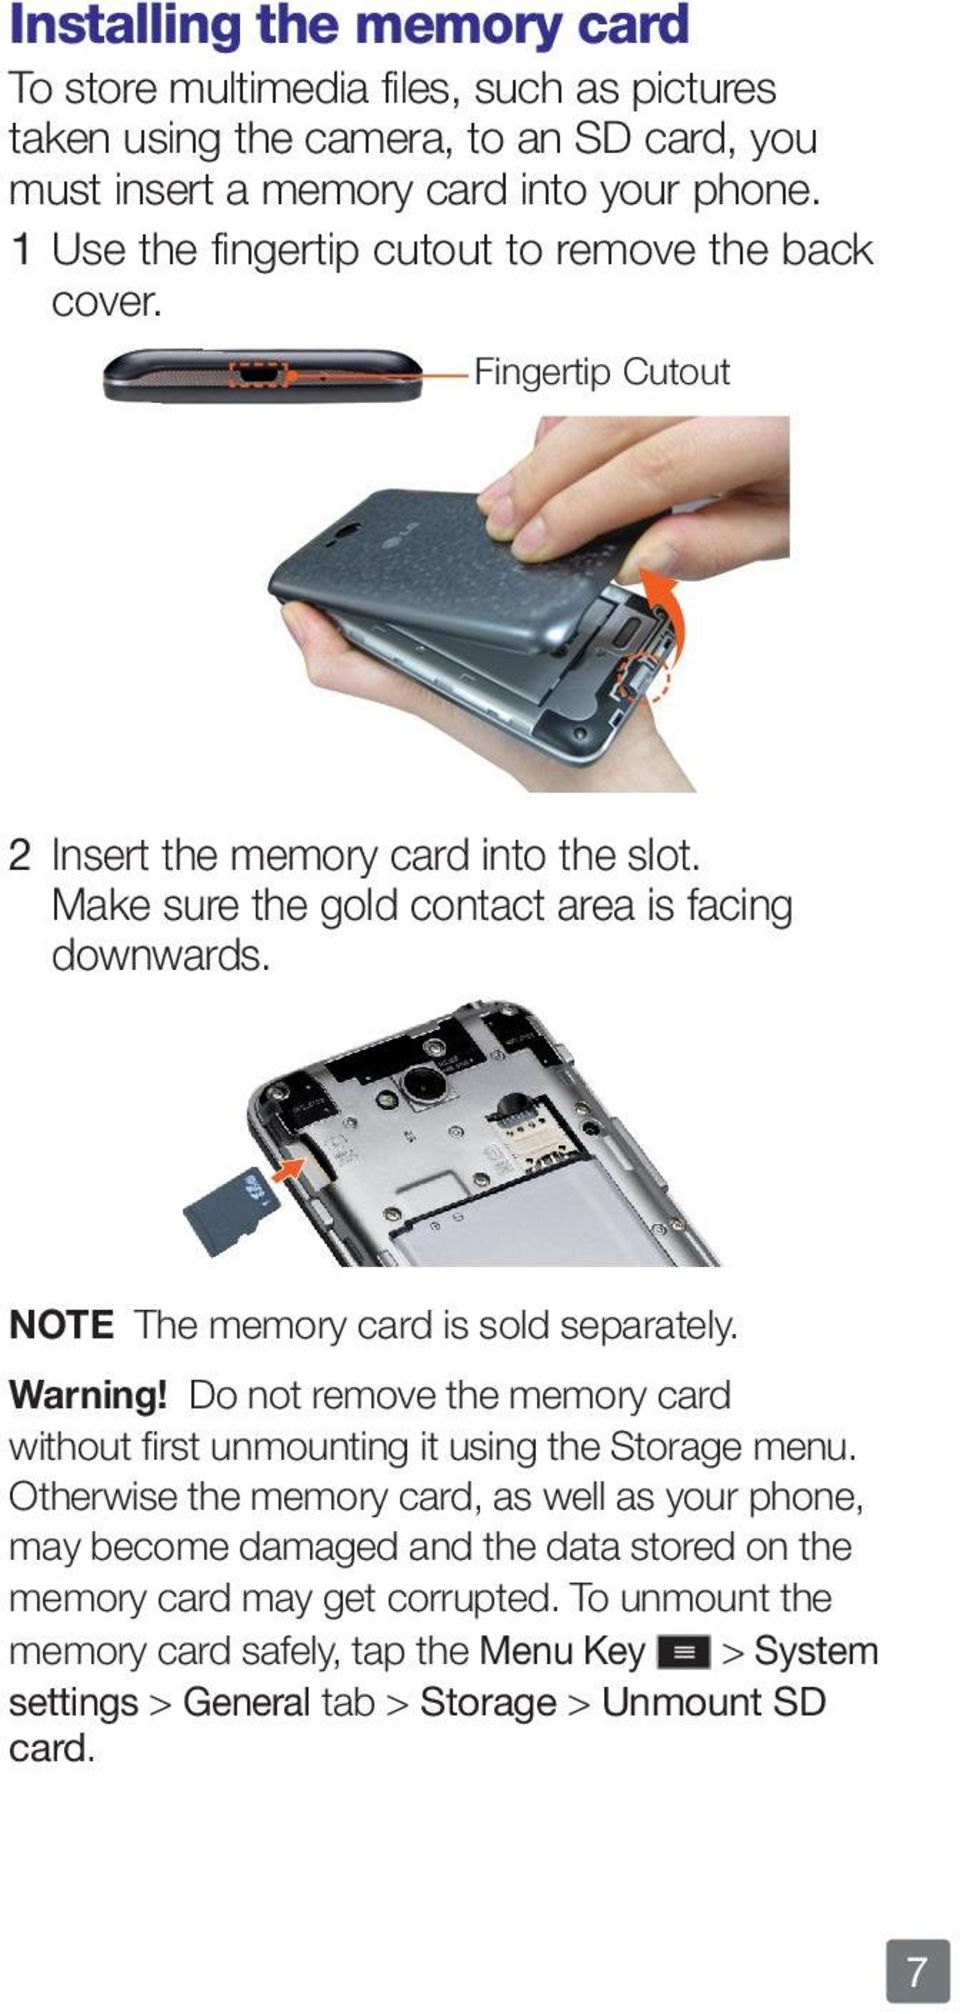 NOTE The memory card is sold separately. Warning! Do not remove the memory card without first unmounting it using the Storage menu.